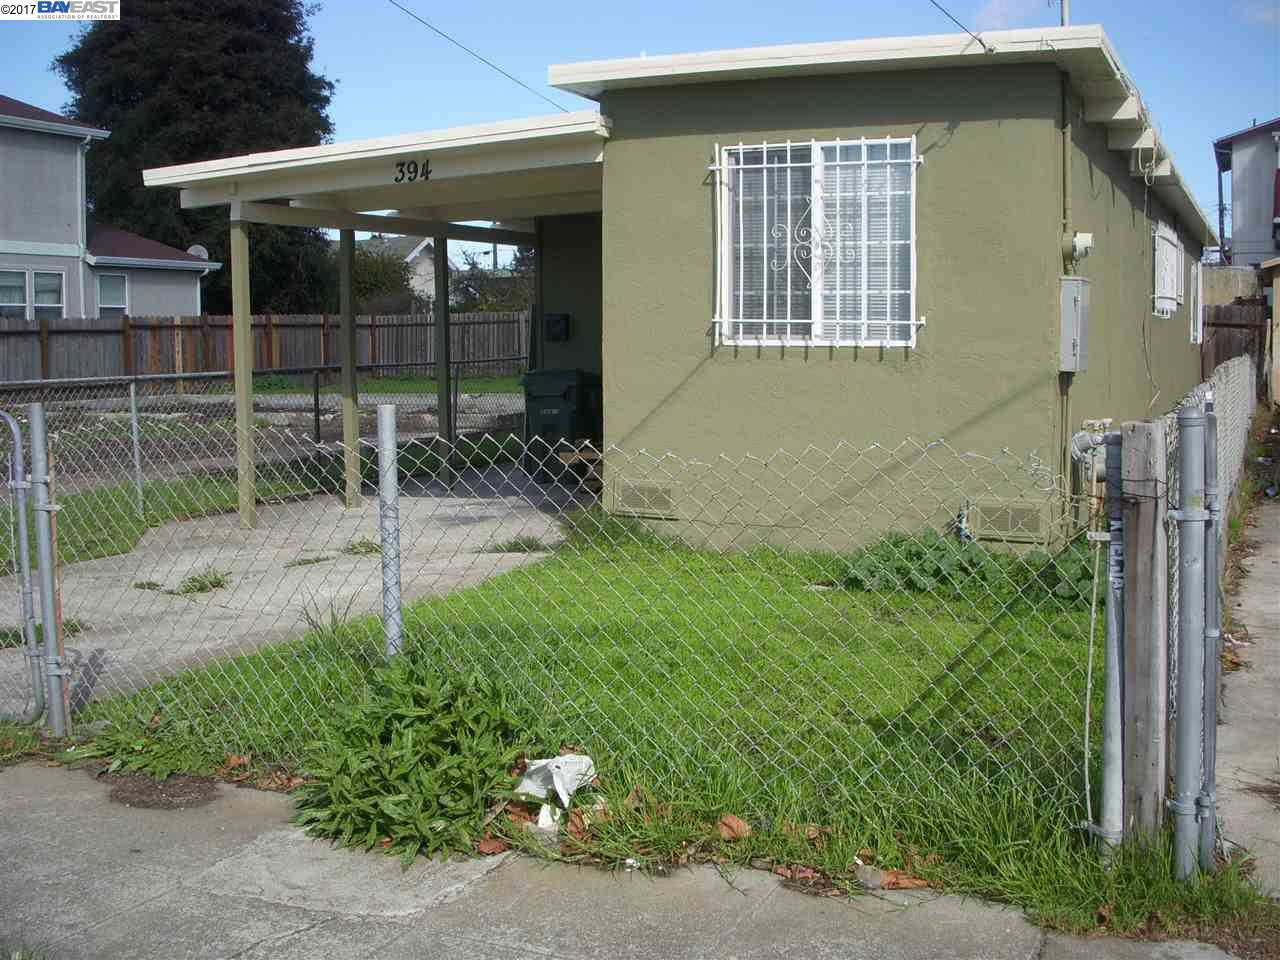 394 S 34TH ST, RICHMOND, CA 94804